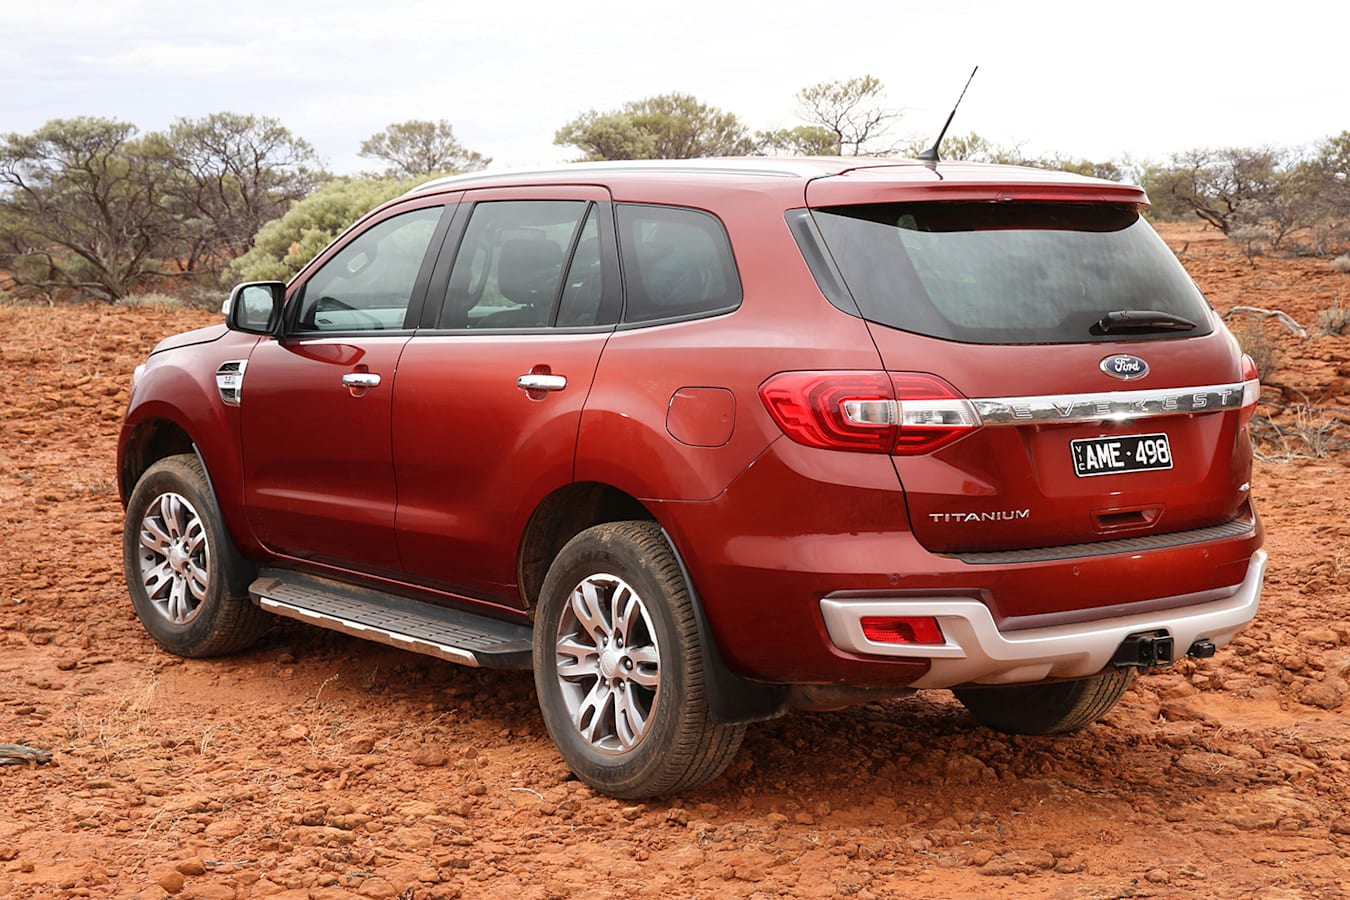 2018 Ford Everest rear